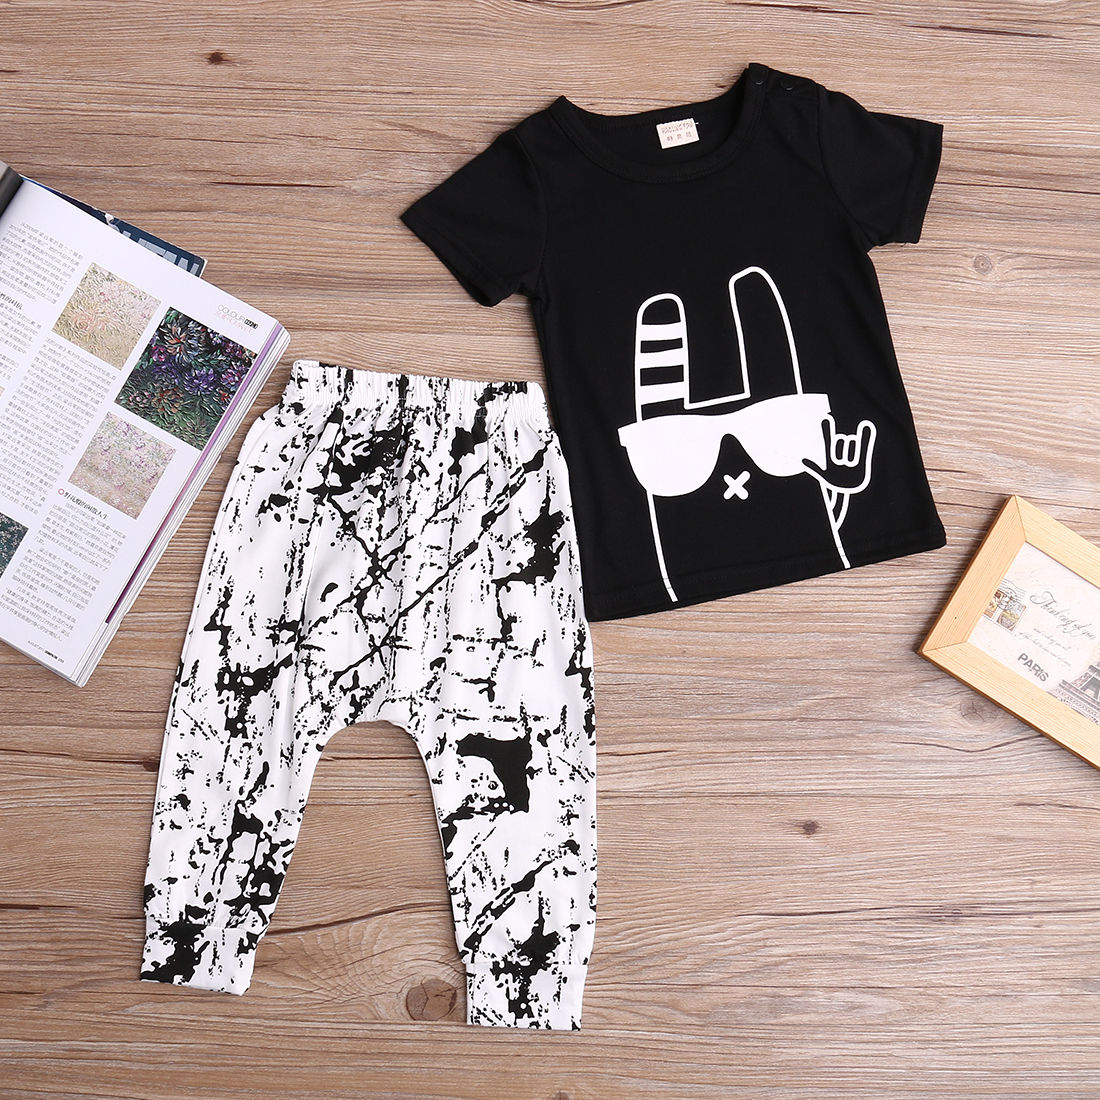 Clothes Sets T-shirt Tops + Pants Outfits Set Boy 2016 New Arriving Brand High Quality 2pcs Newborn Toddler Infant Kids Baby Boy